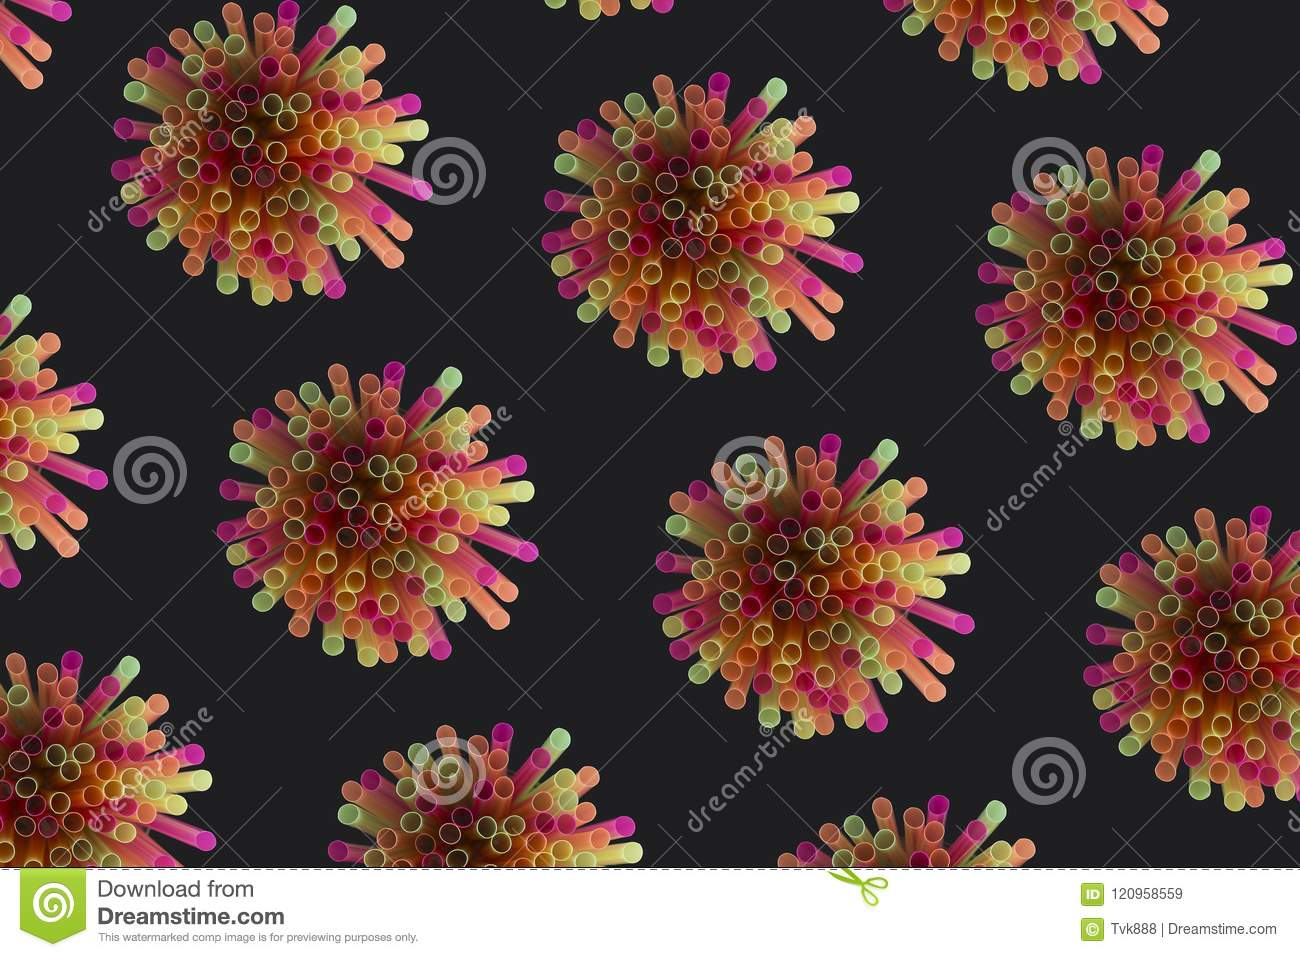 Creative view of drinking straws for party on black background i